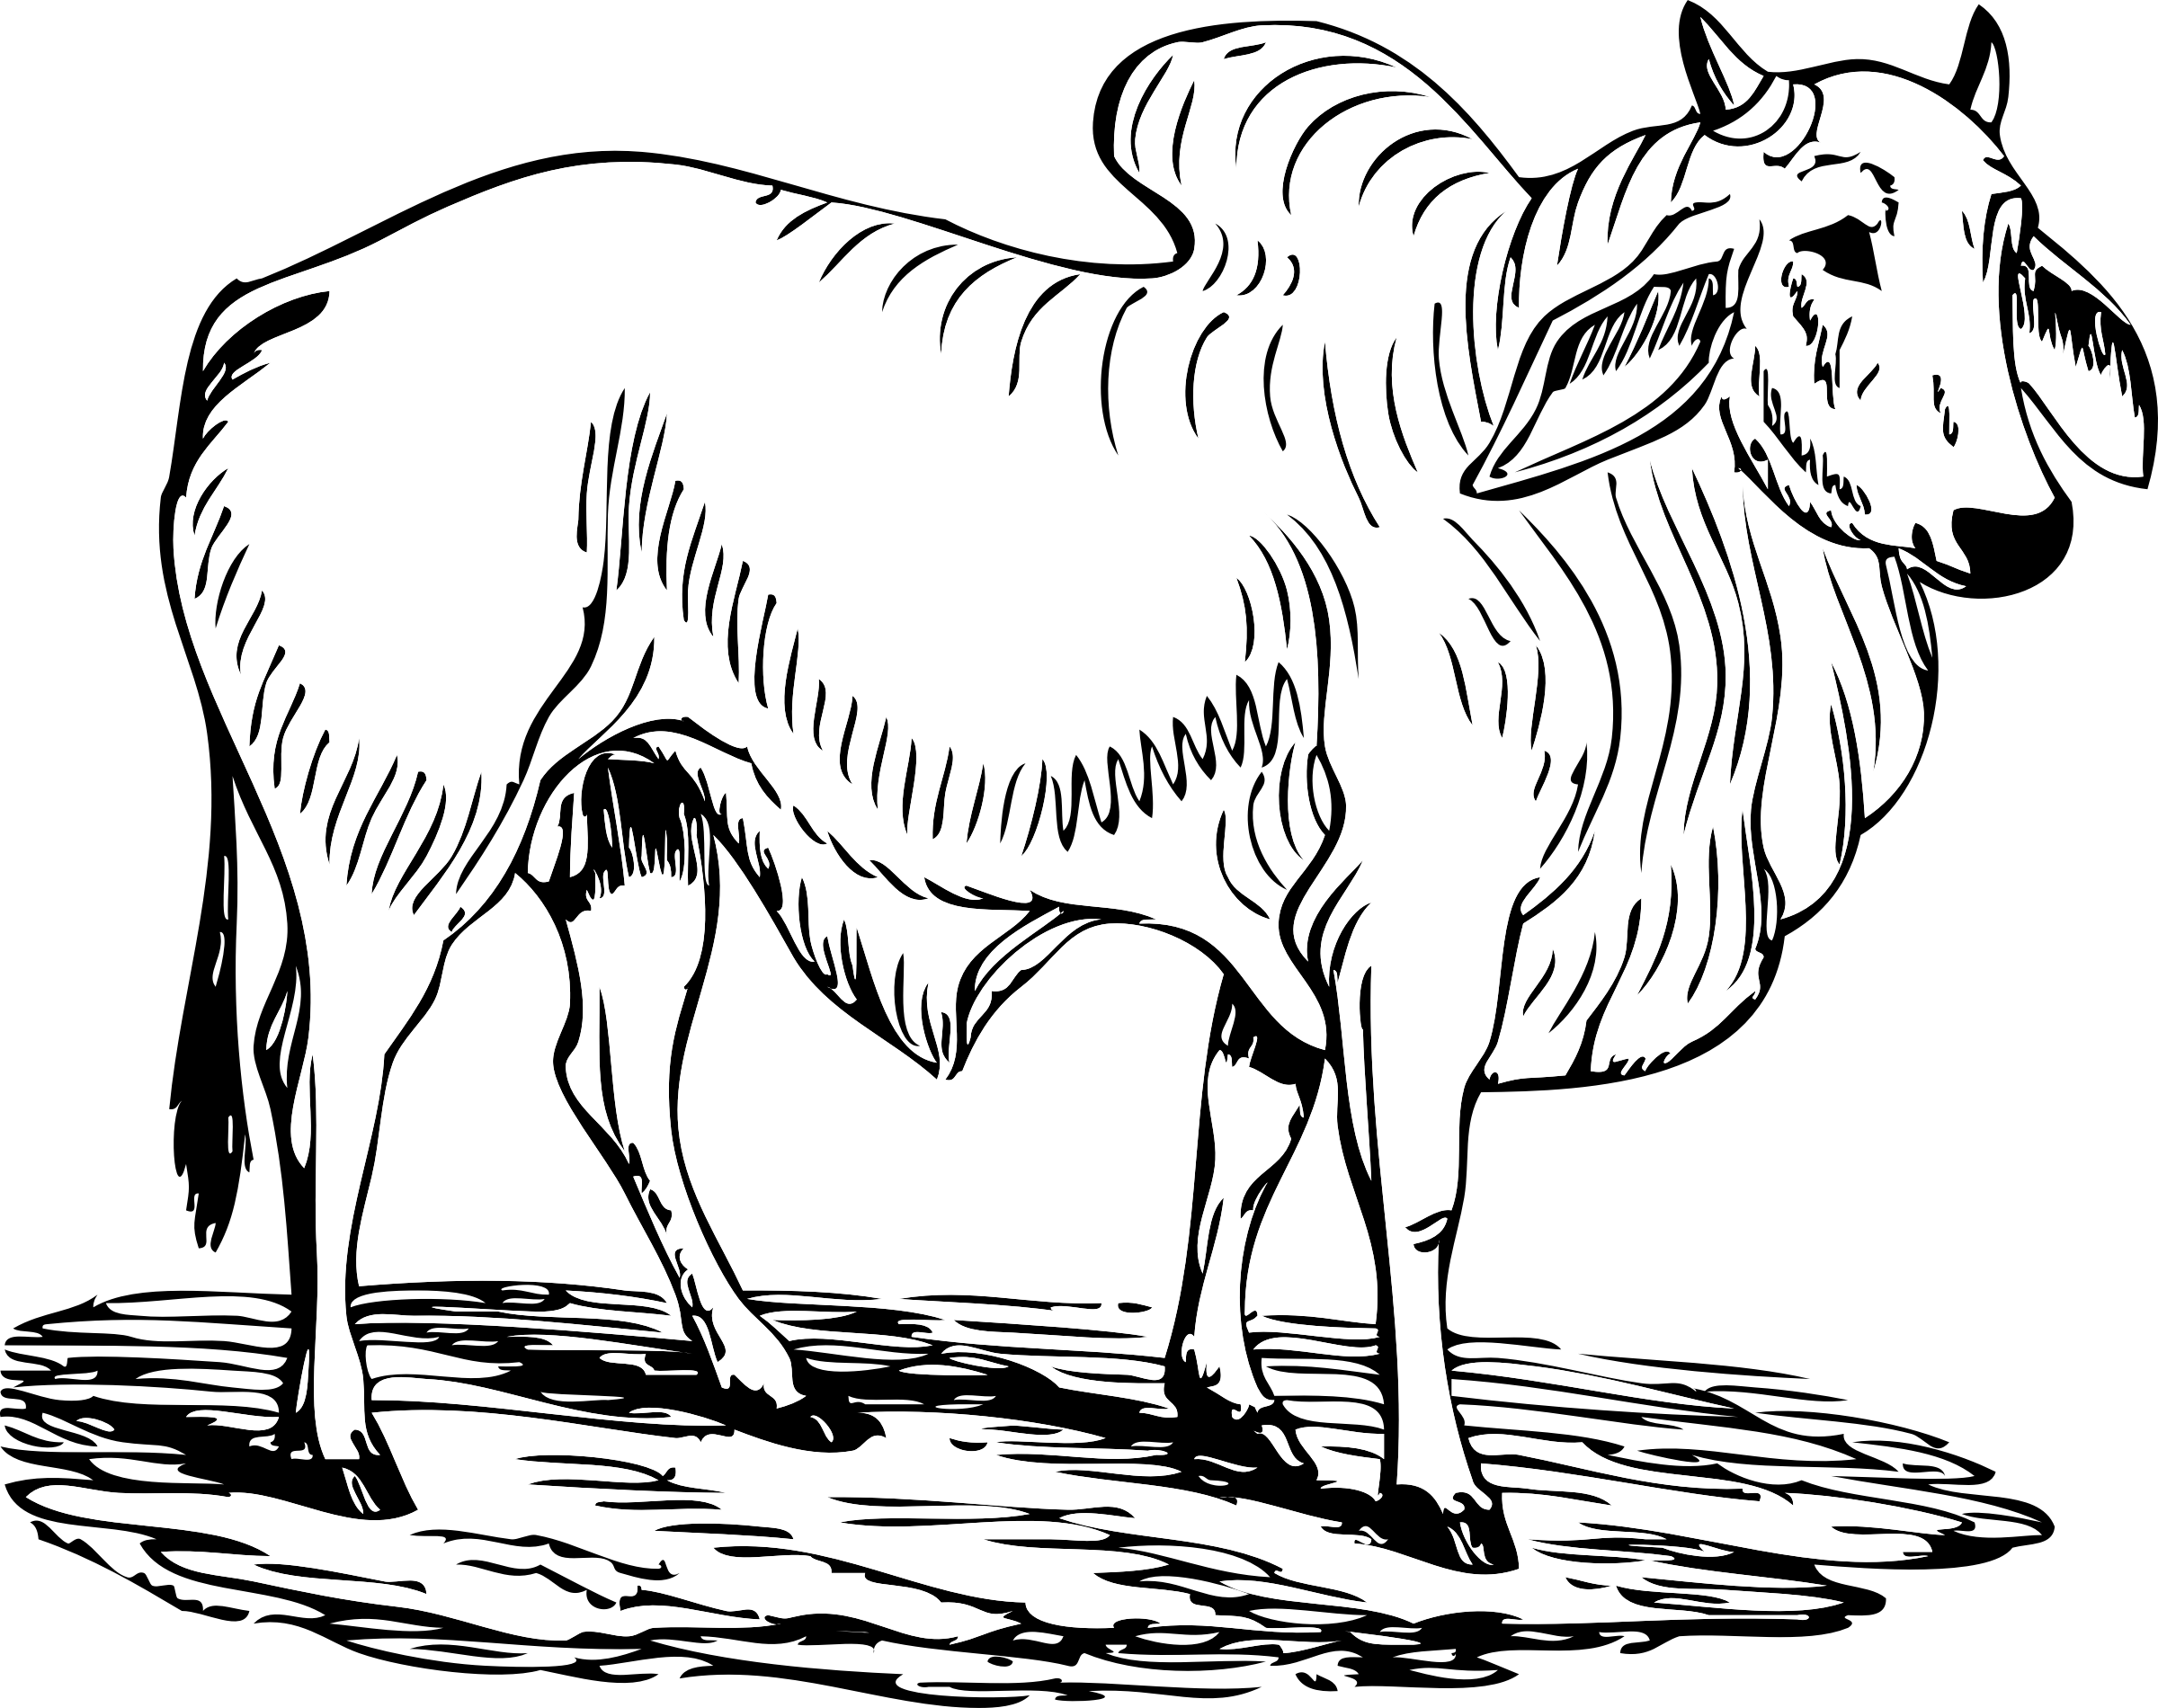 Ox sketch free on. Bull clipart outline